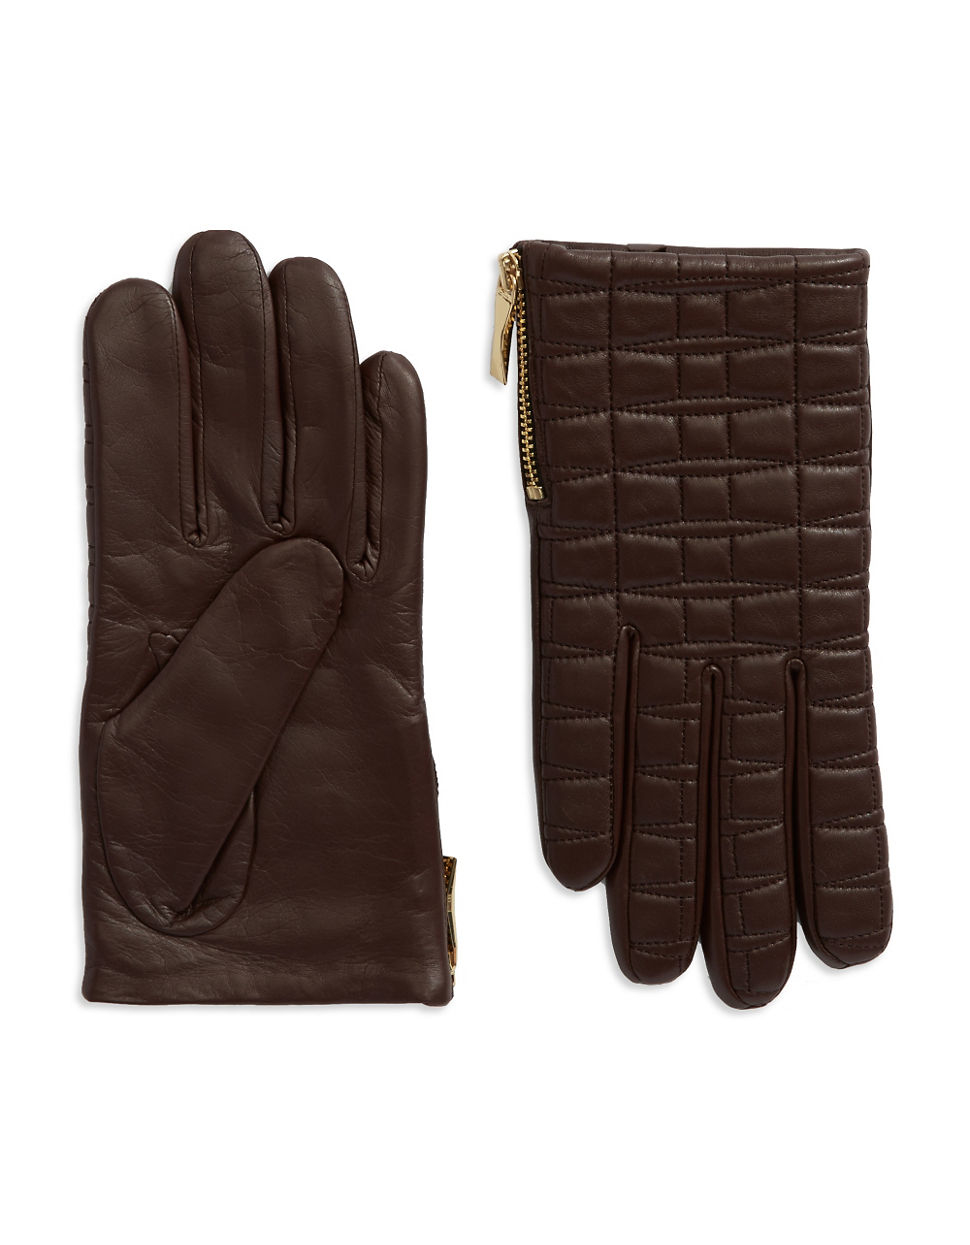 Quilted leather driving gloves - Kate Spade New York Women S Brown Quilted Leather Driving Gloves